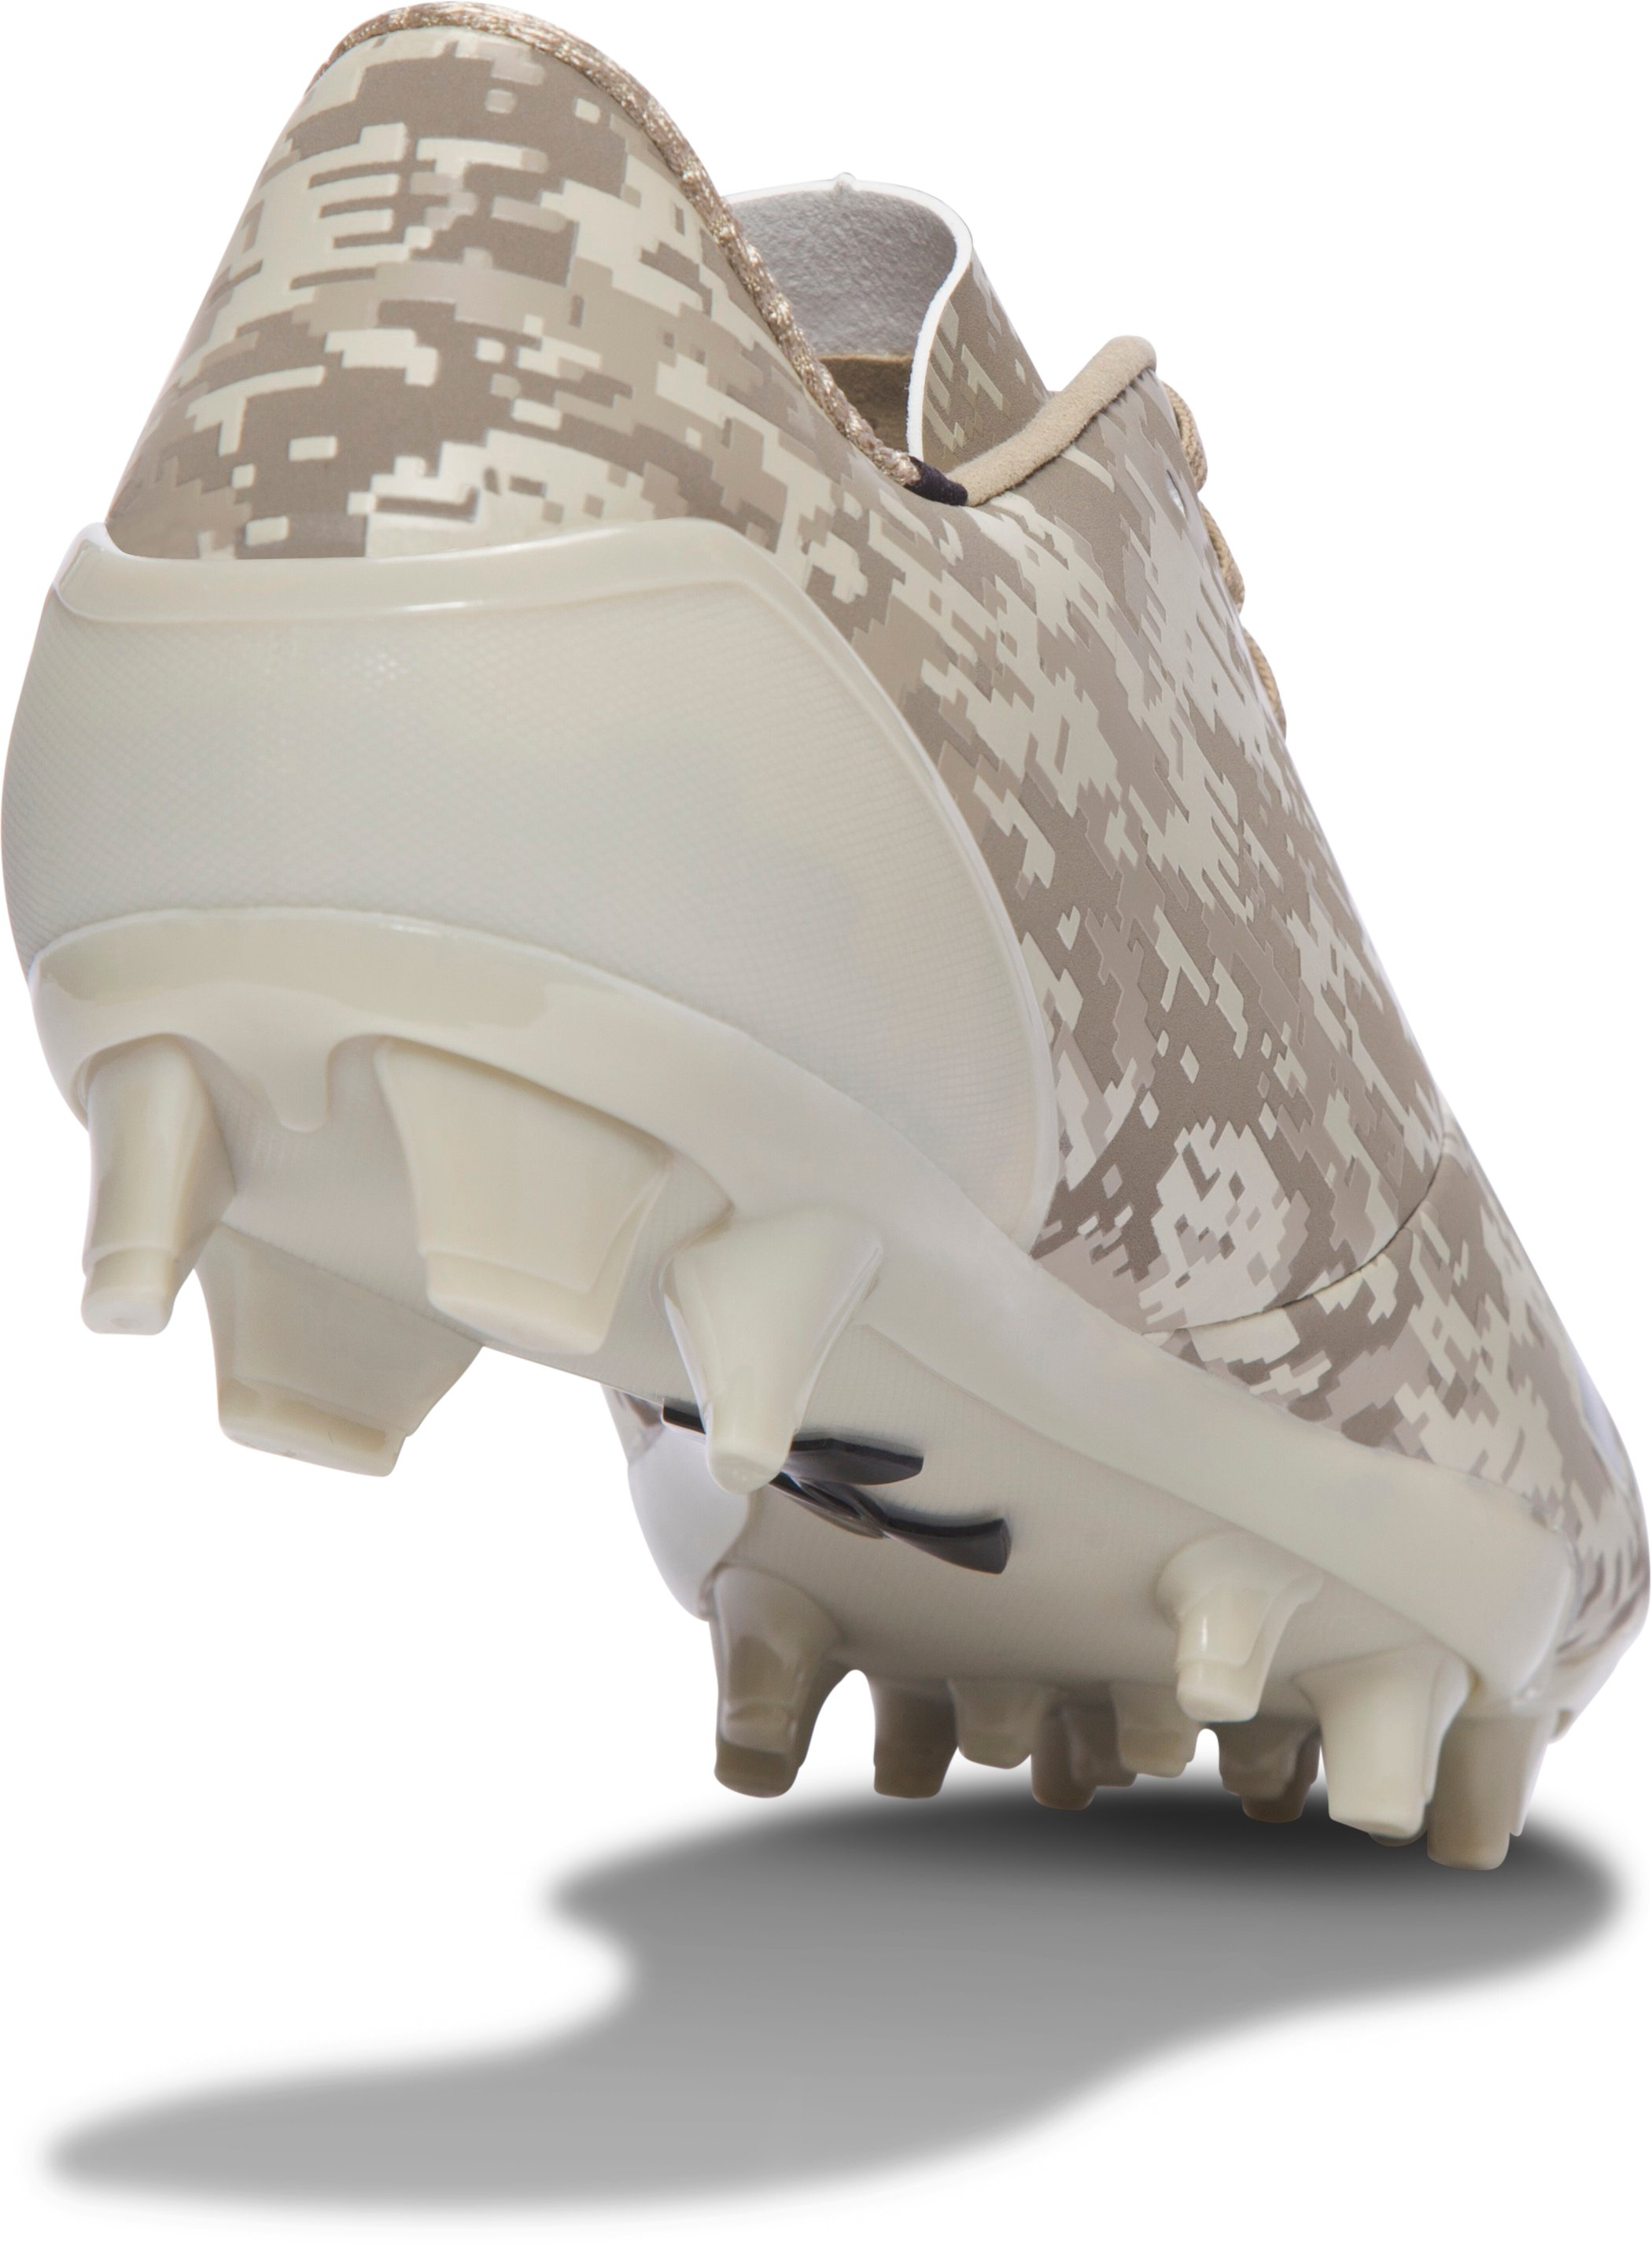 Men's UA Spotlight — Limited Edition Football Cleats, Sandstorm